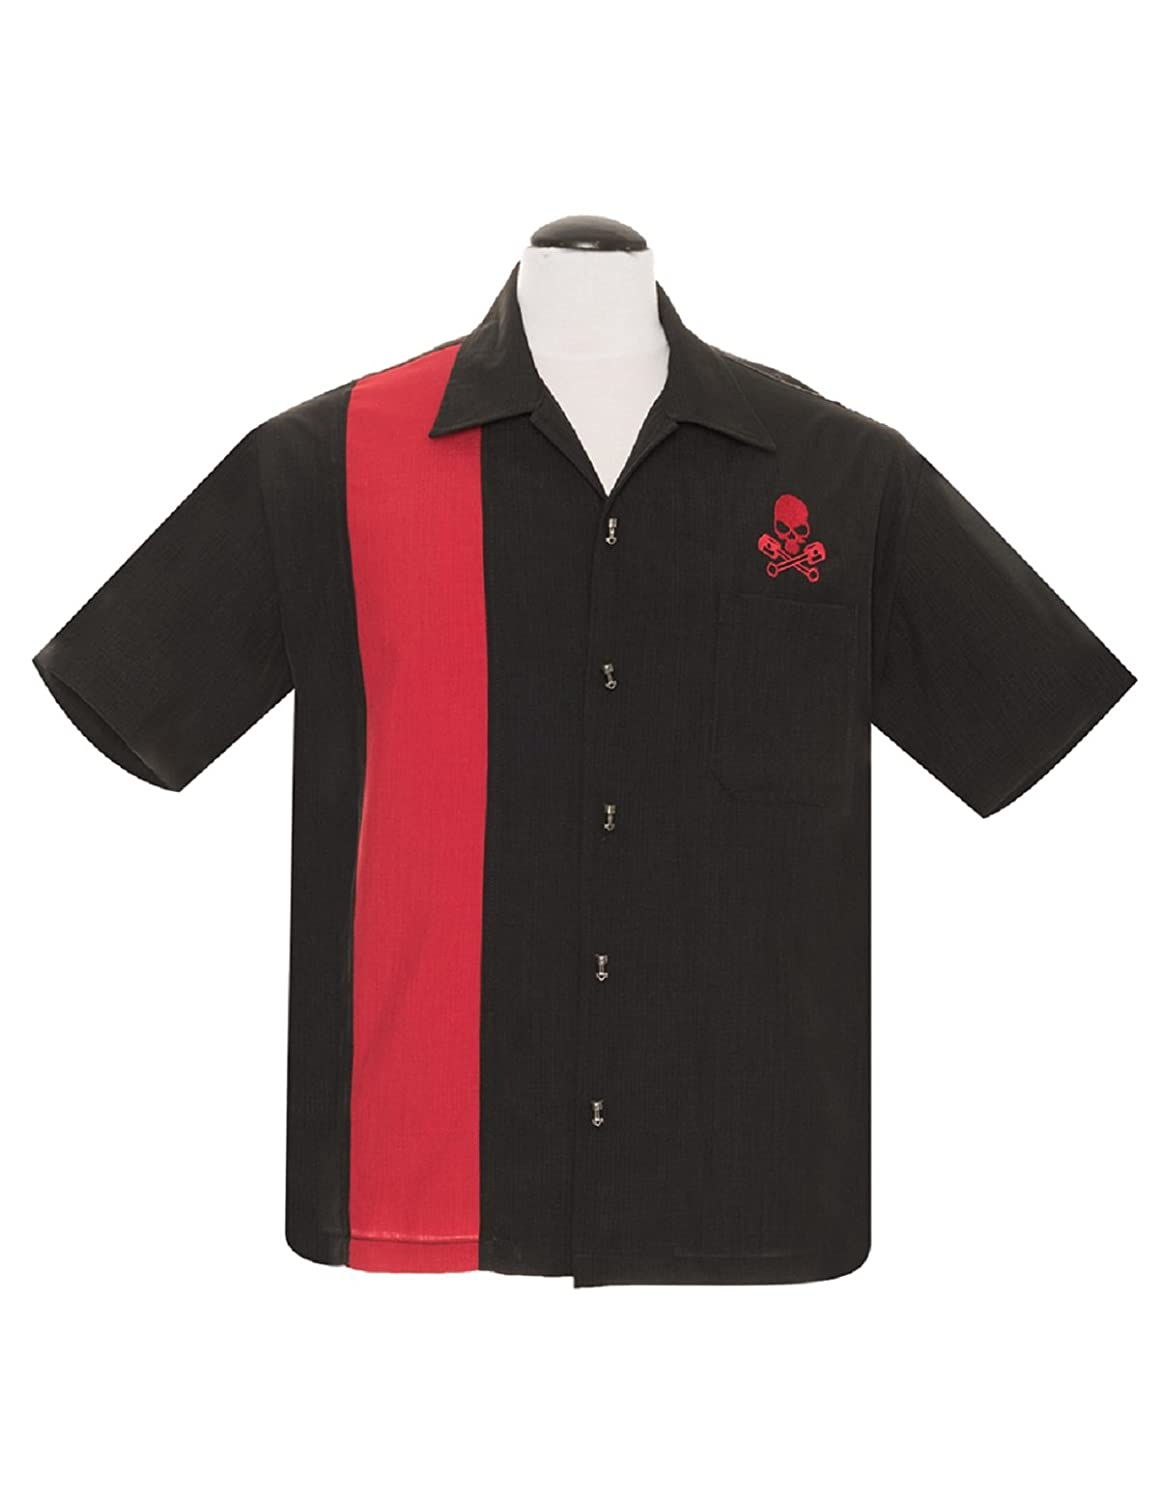 Steady Men's Skull Piston Button up in Black Red Bowling Shirt Rat Rod